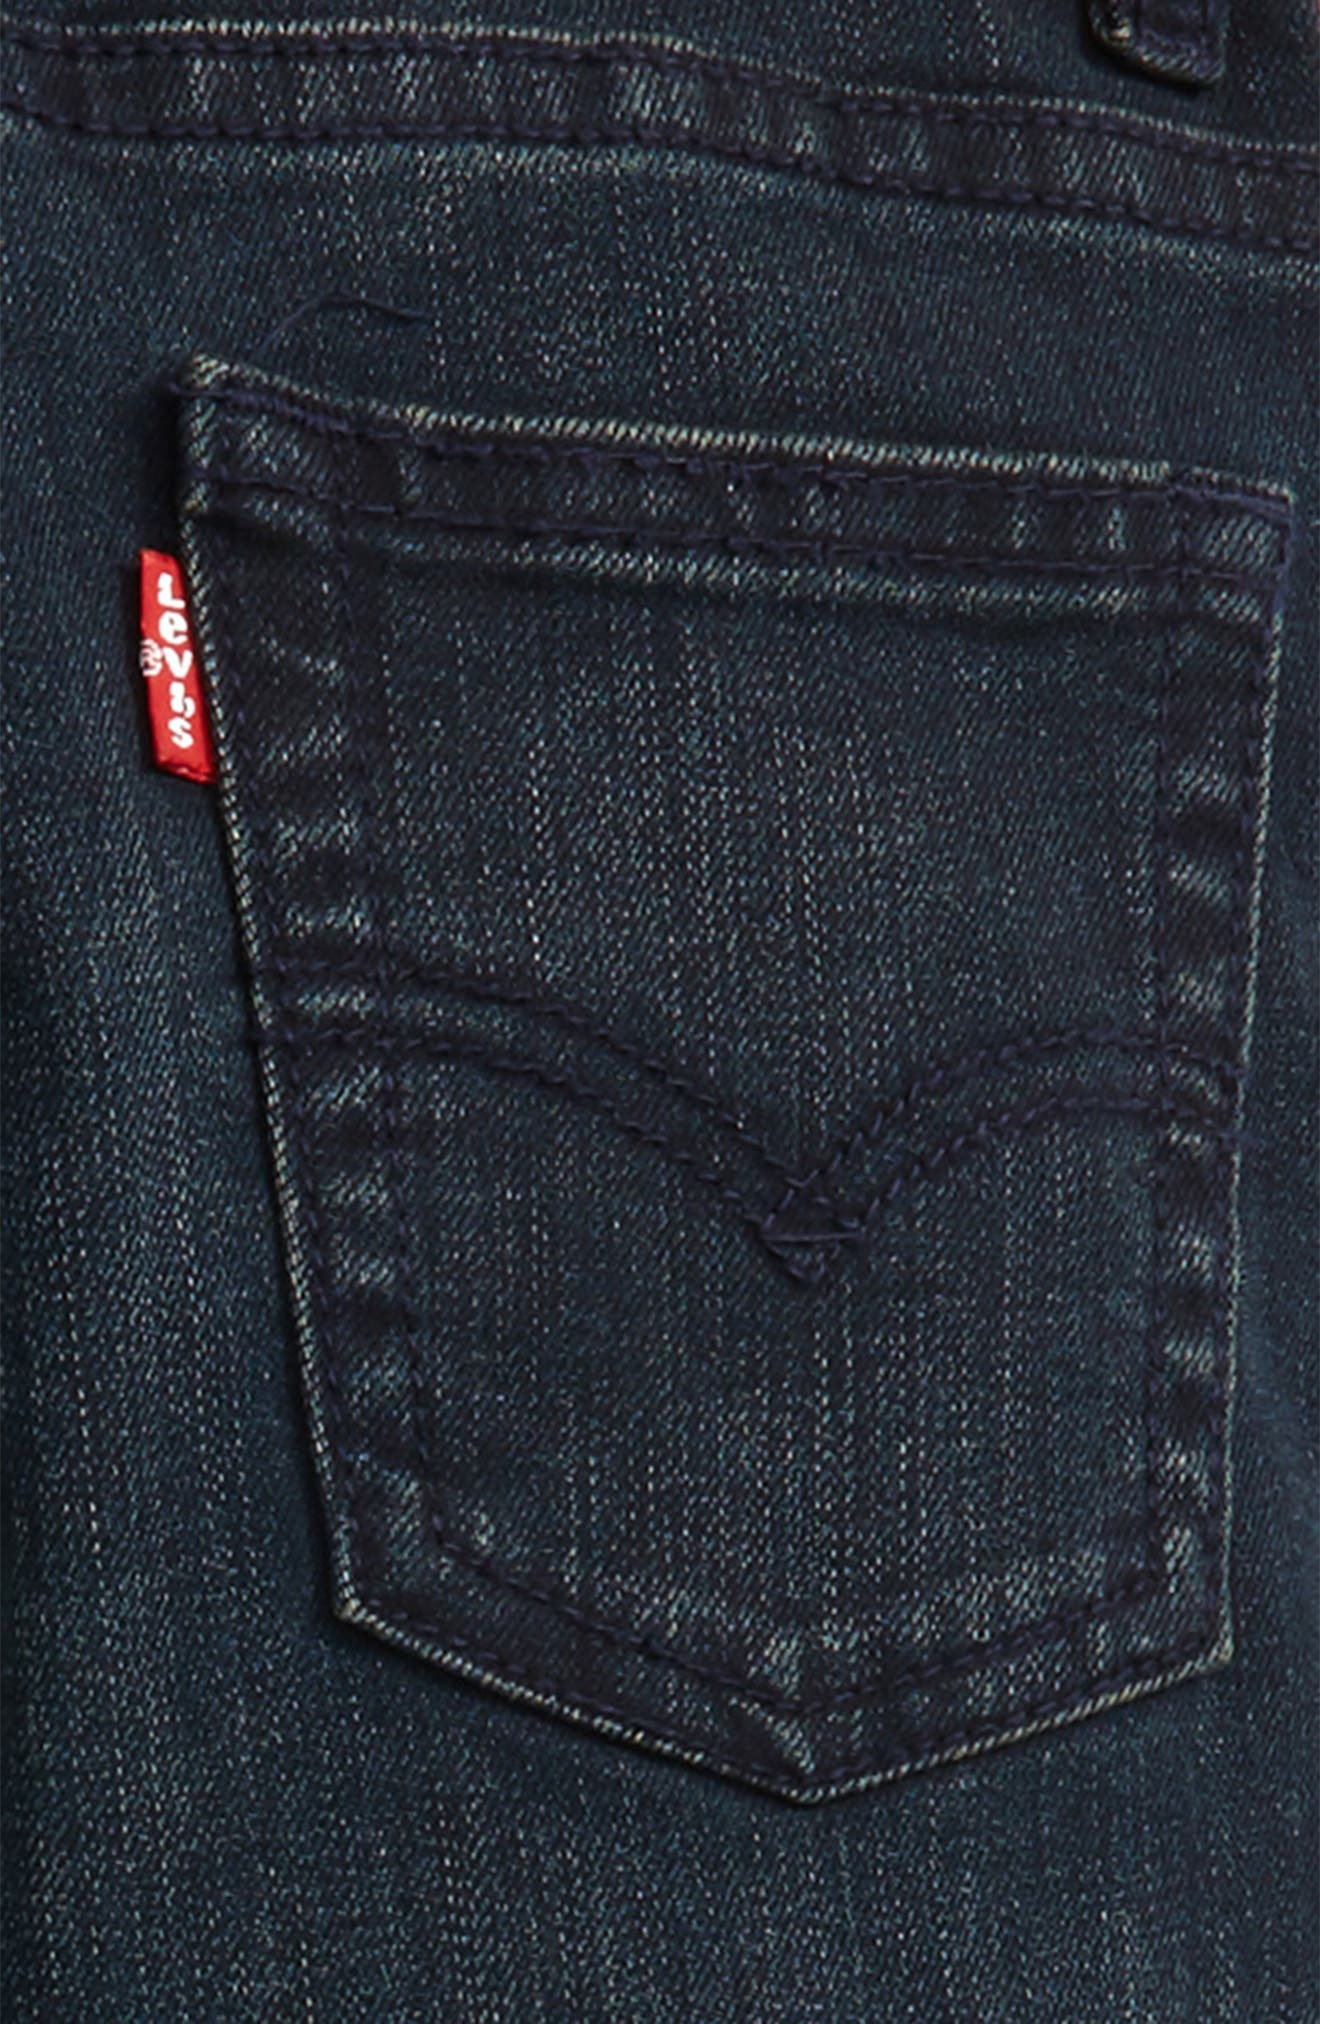 511 Slim Fit Jeans,                             Alternate thumbnail 3, color,                             403